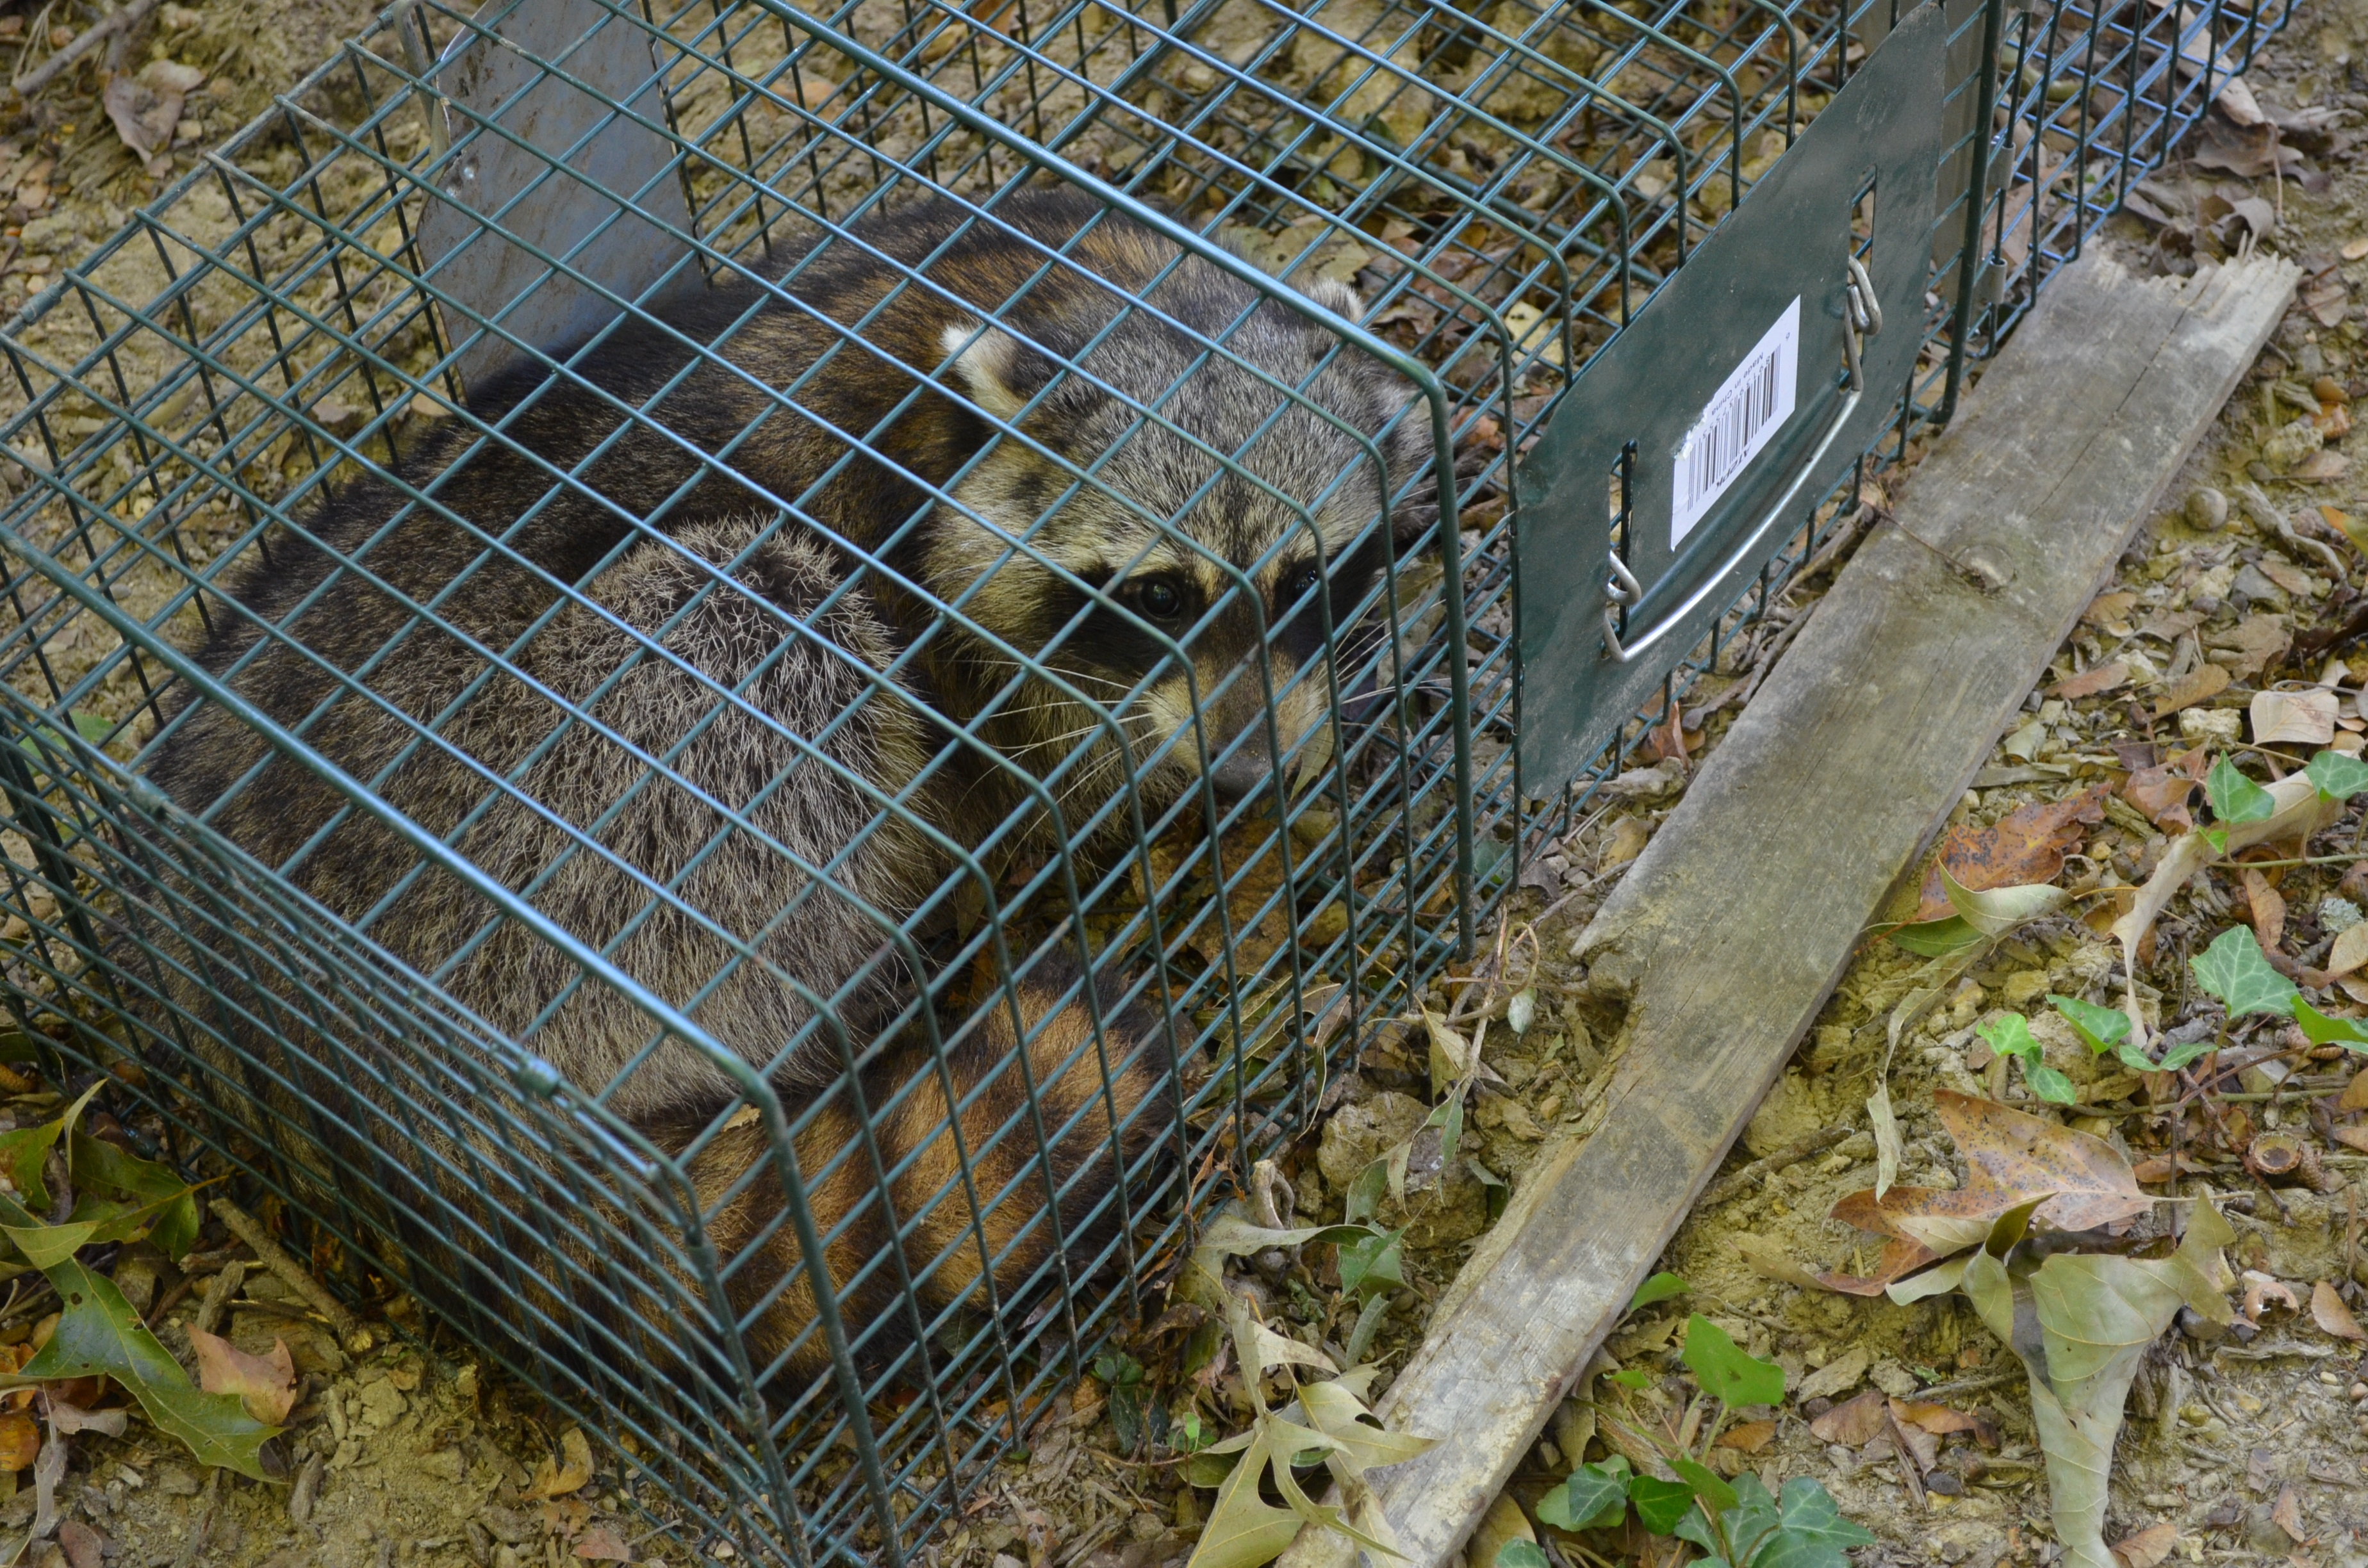 Racoon in overturned trap